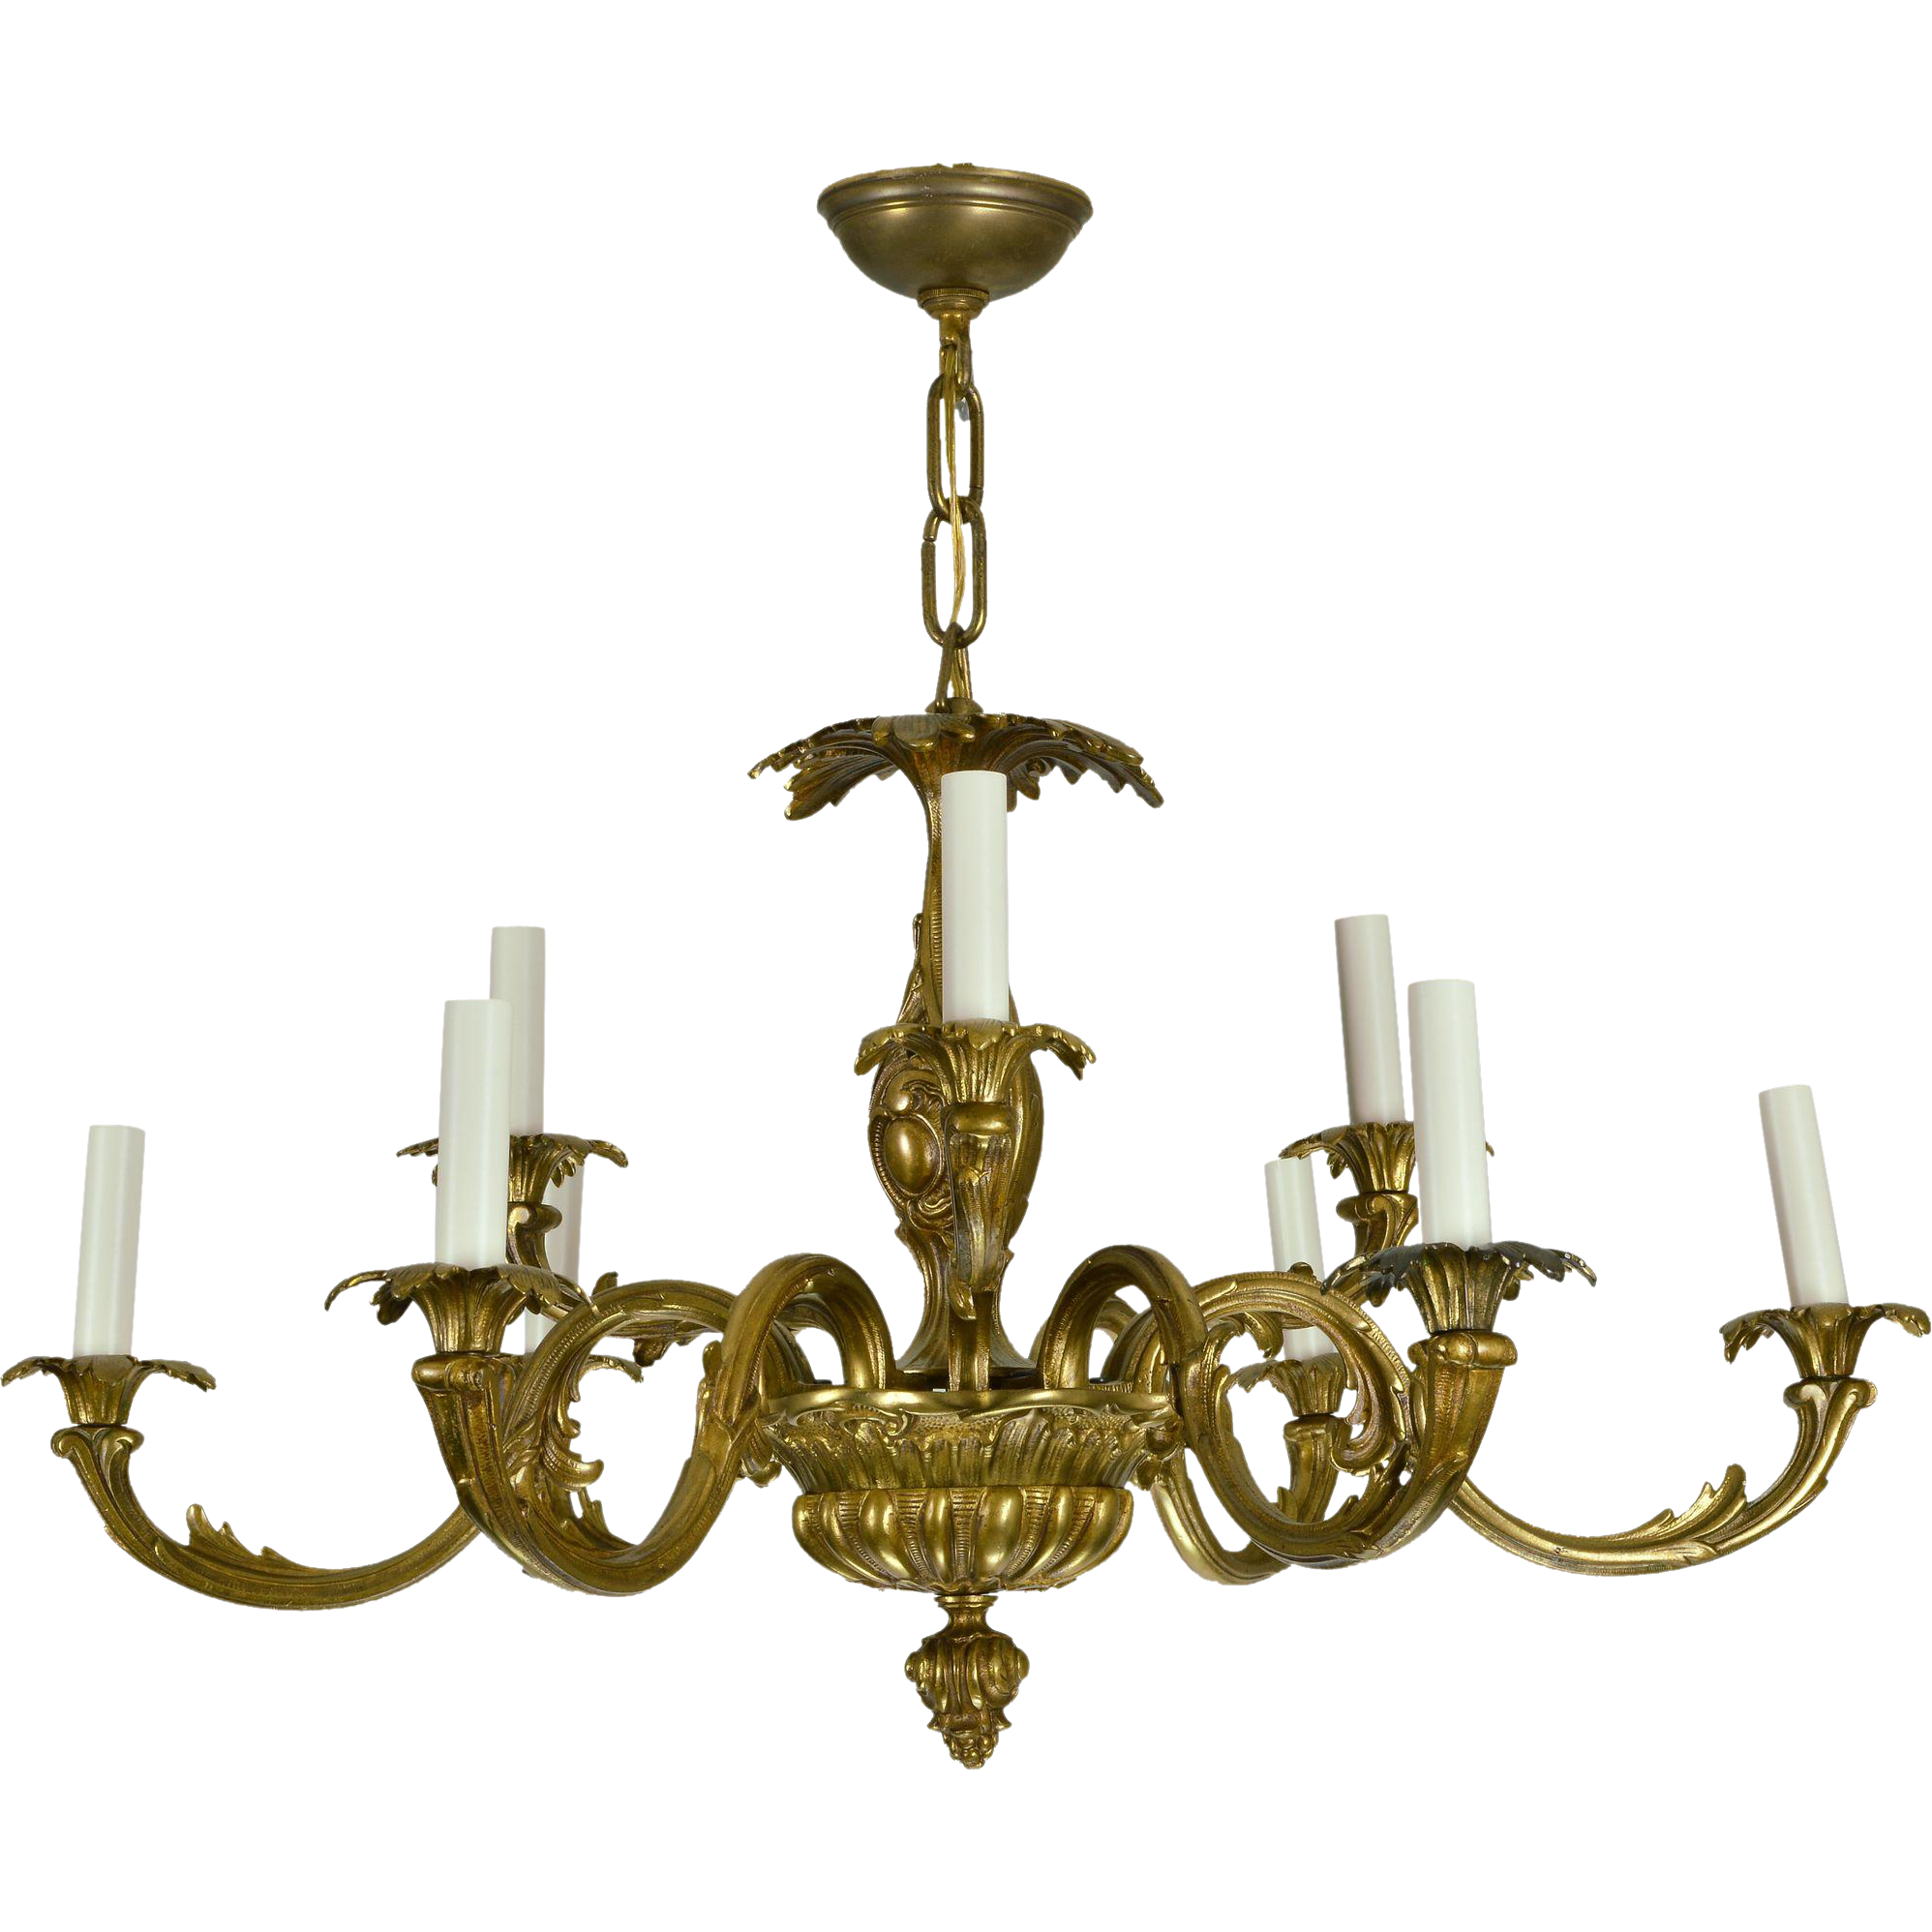 Vintage brass french baroque chandelier the old light warehouse vintage brass french baroque chandelier the old light warehouse ruby lane aloadofball Images